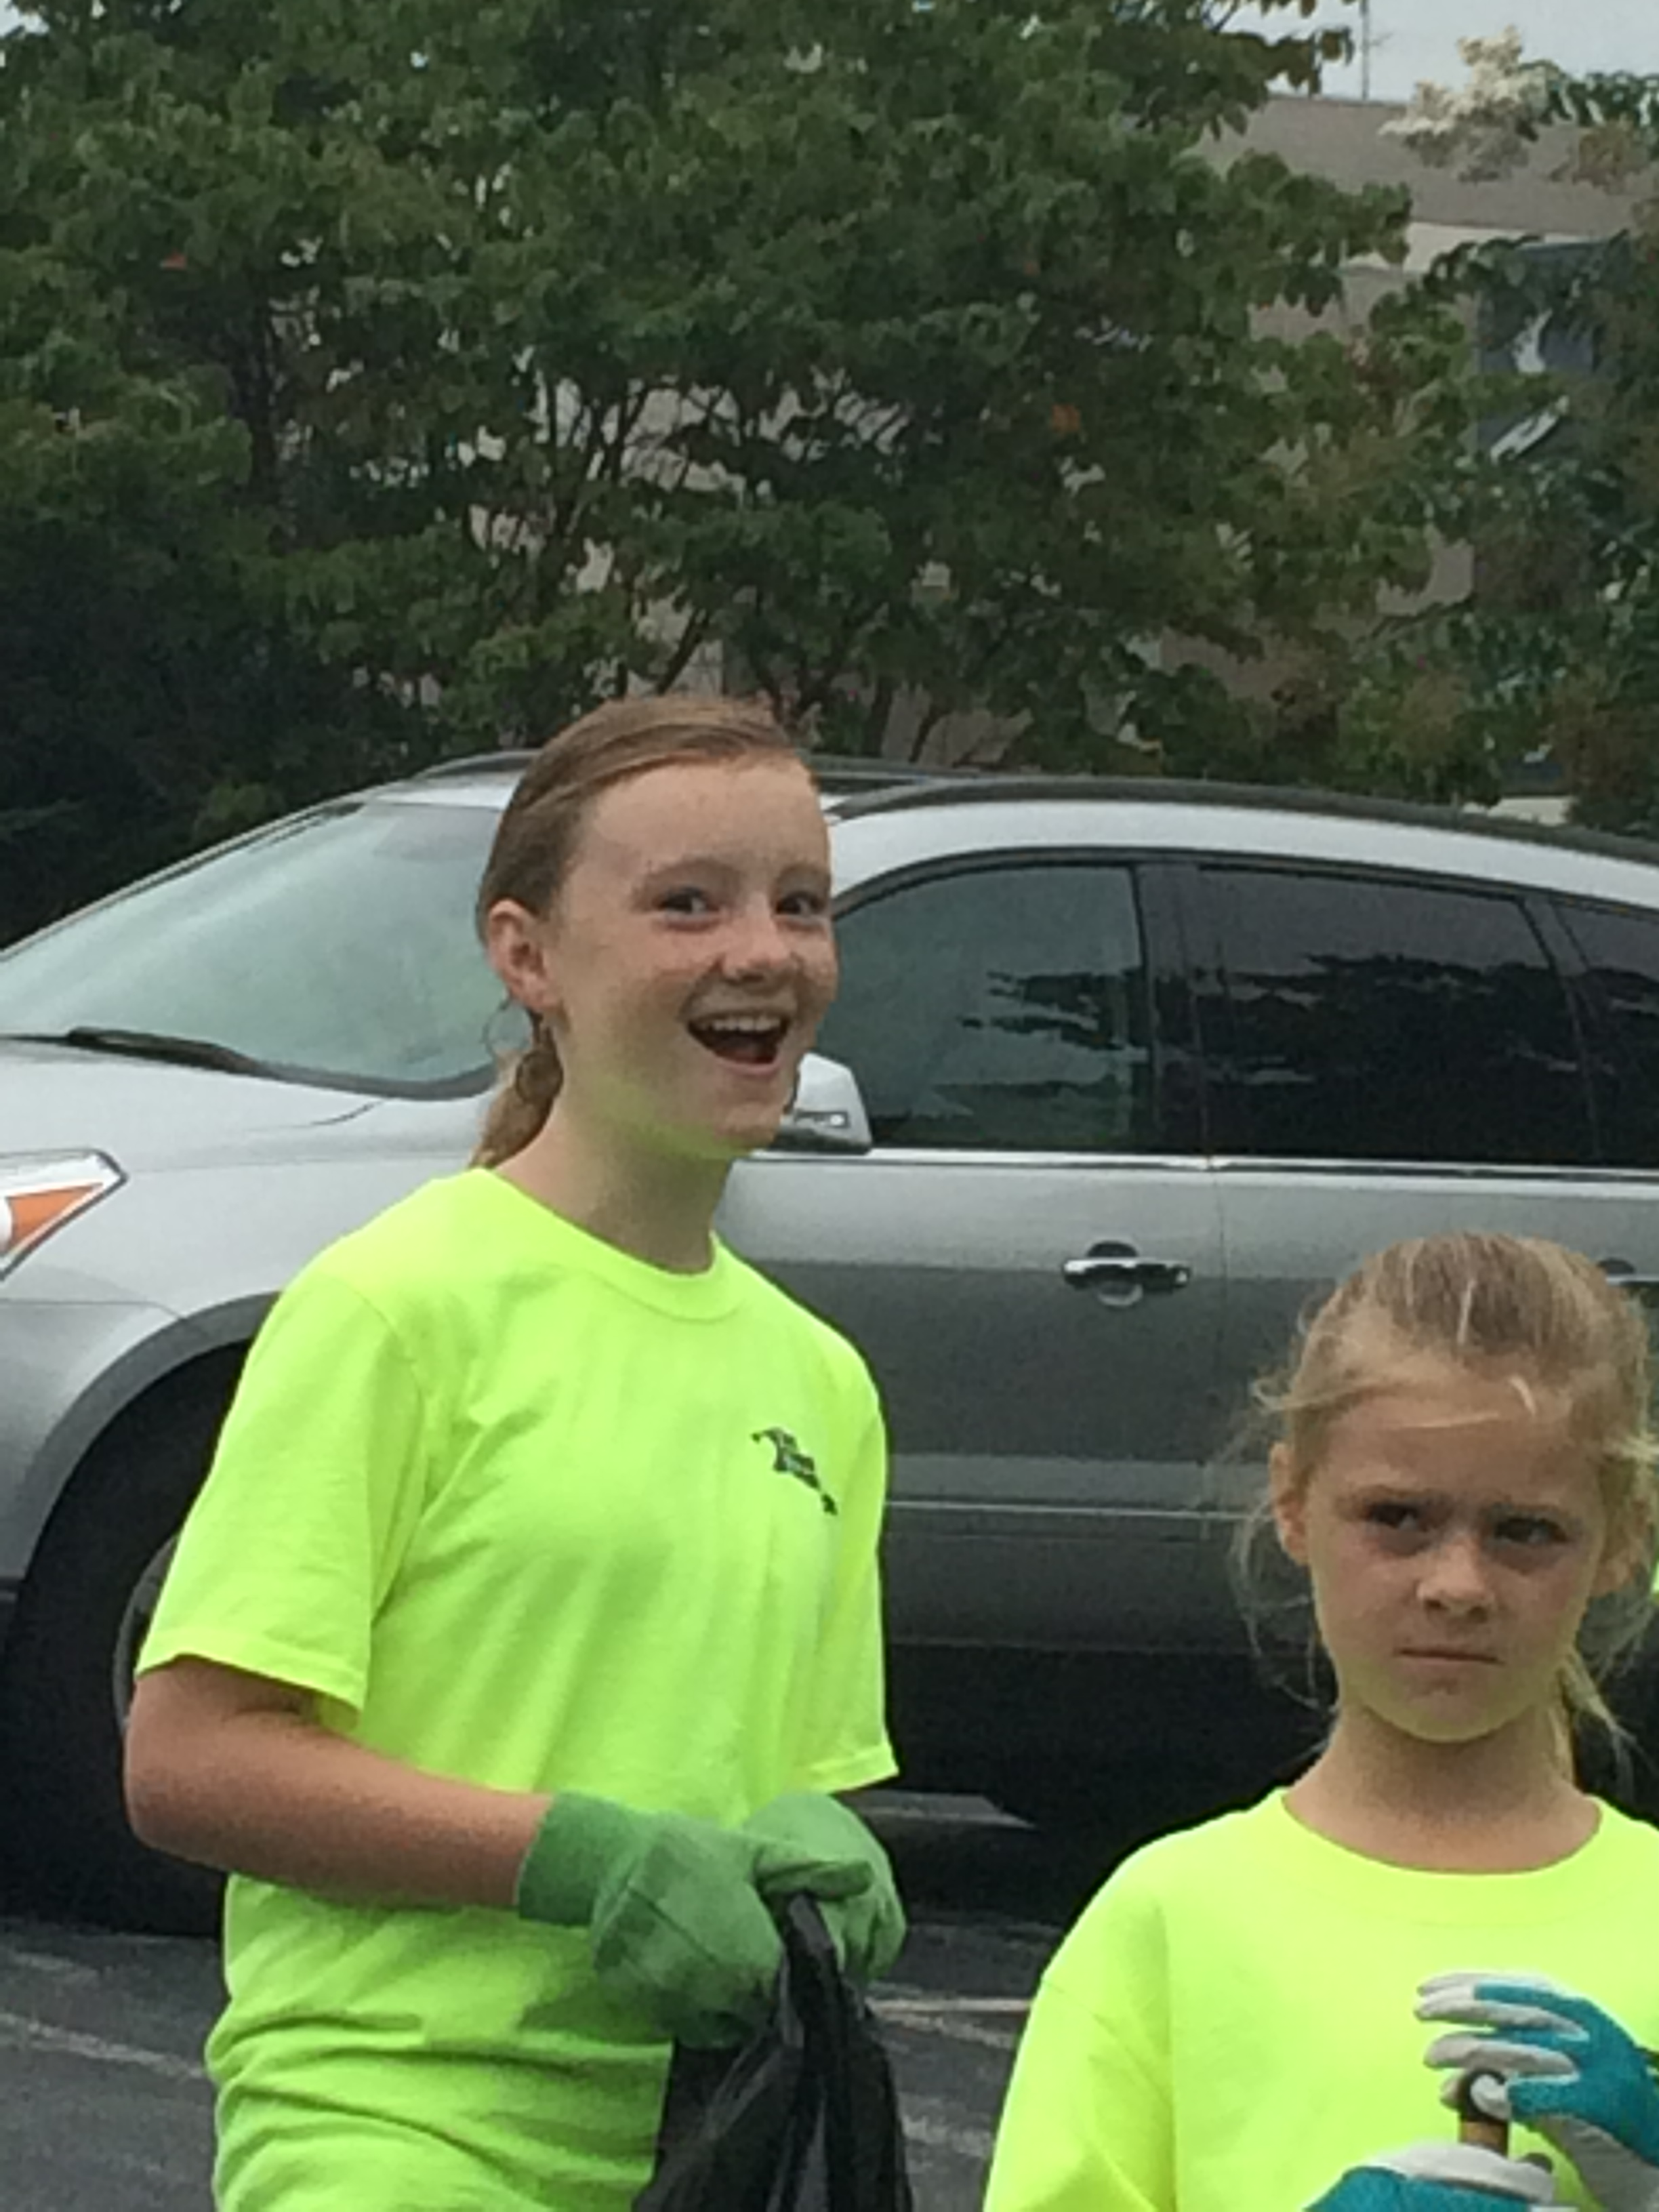 Morgan & Megan Cardille had differing reactions to picking up trash on a Saturday morning.